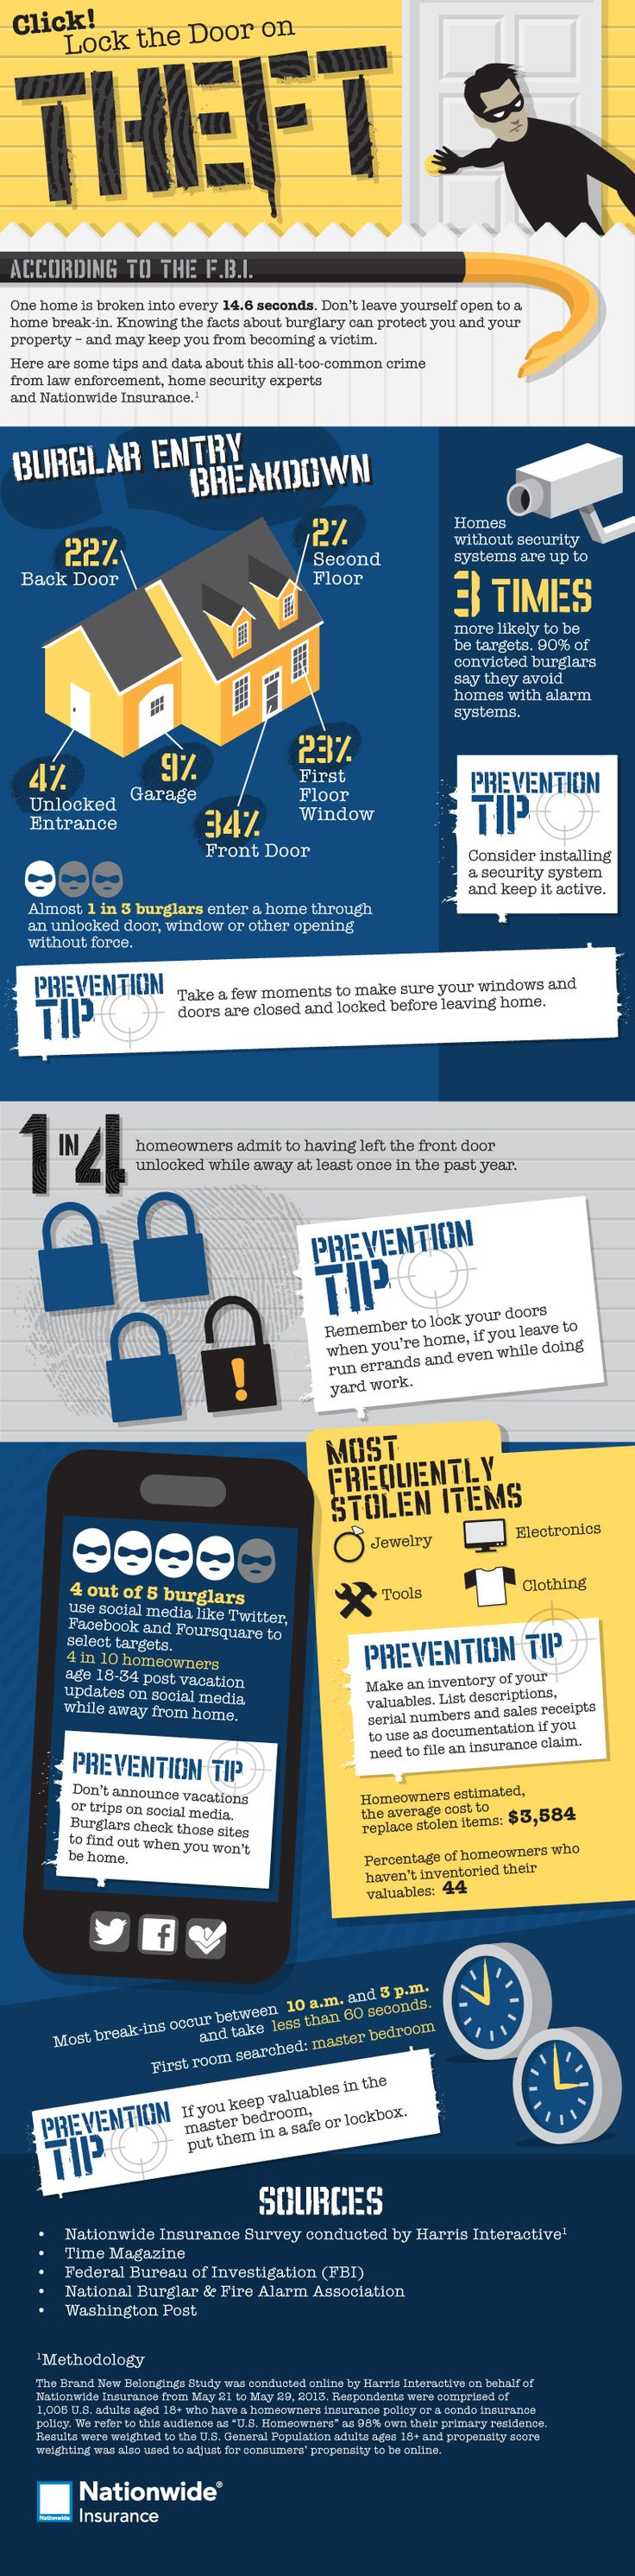 67 best images about safety facts statistics on pinterest for Home safety facts